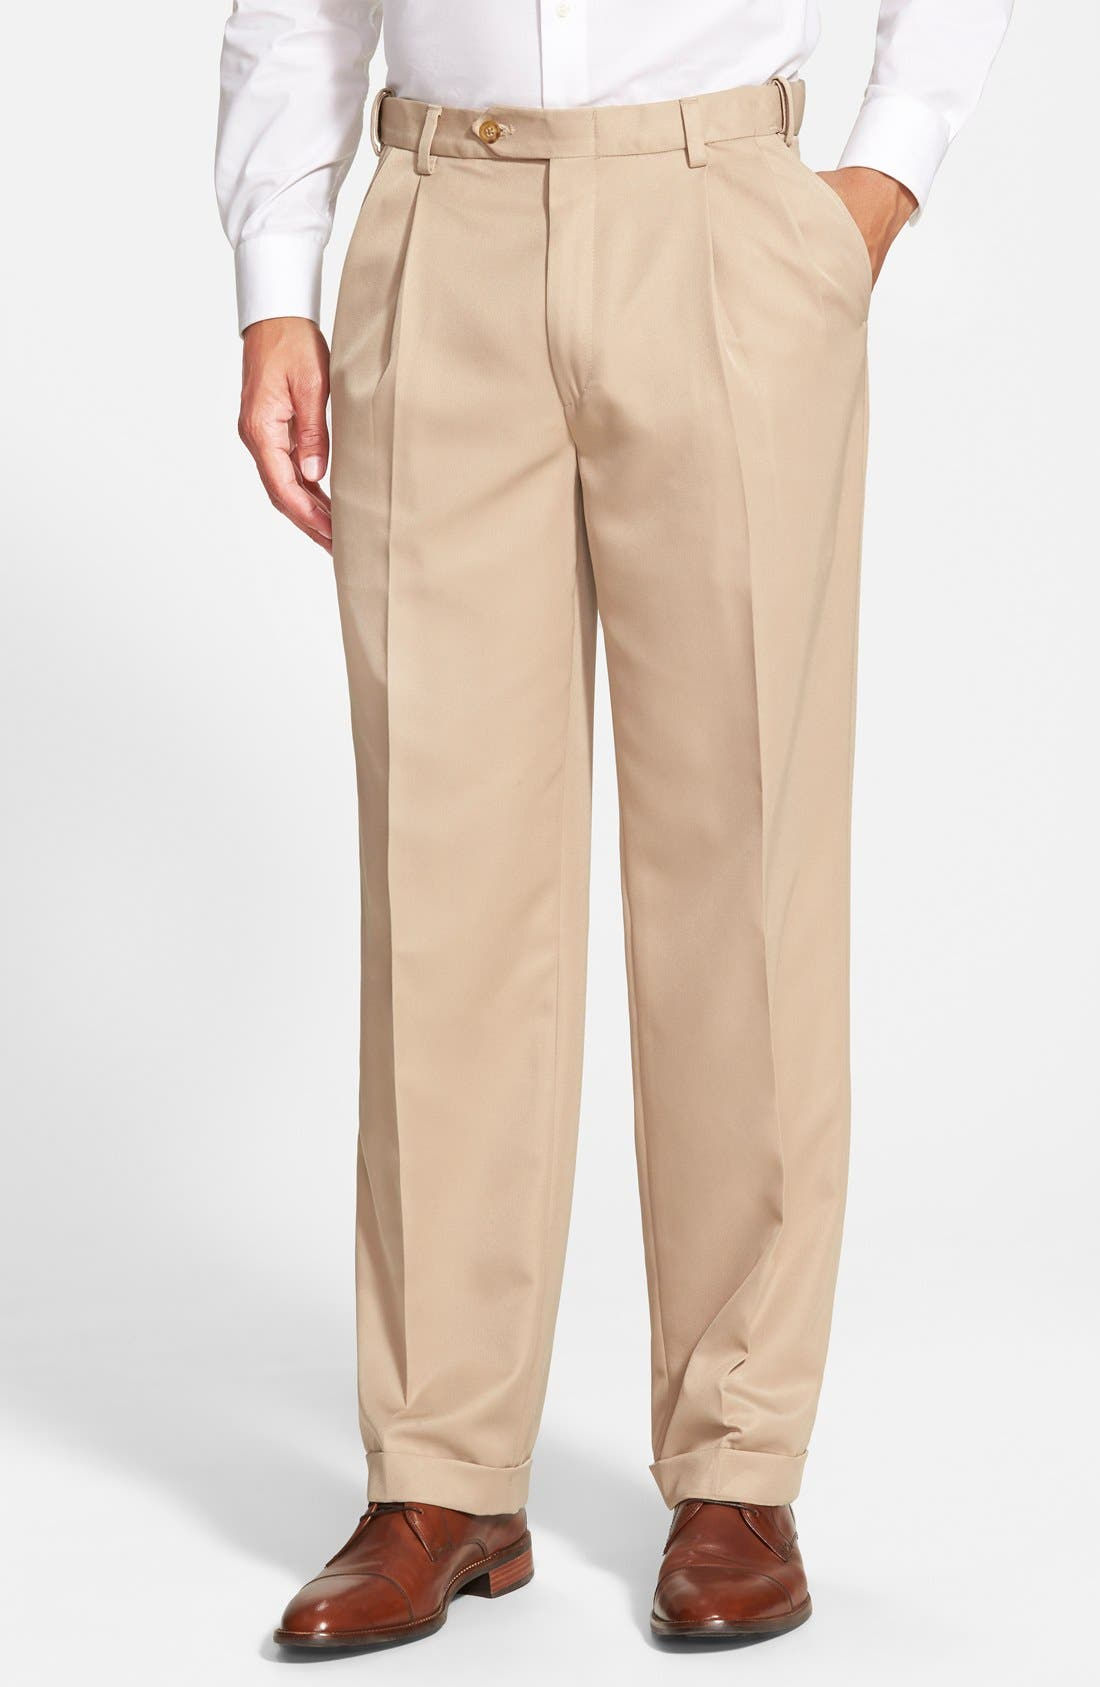 Self Sizer Waist Pleated Trousers,                             Main thumbnail 1, color,                             Tan